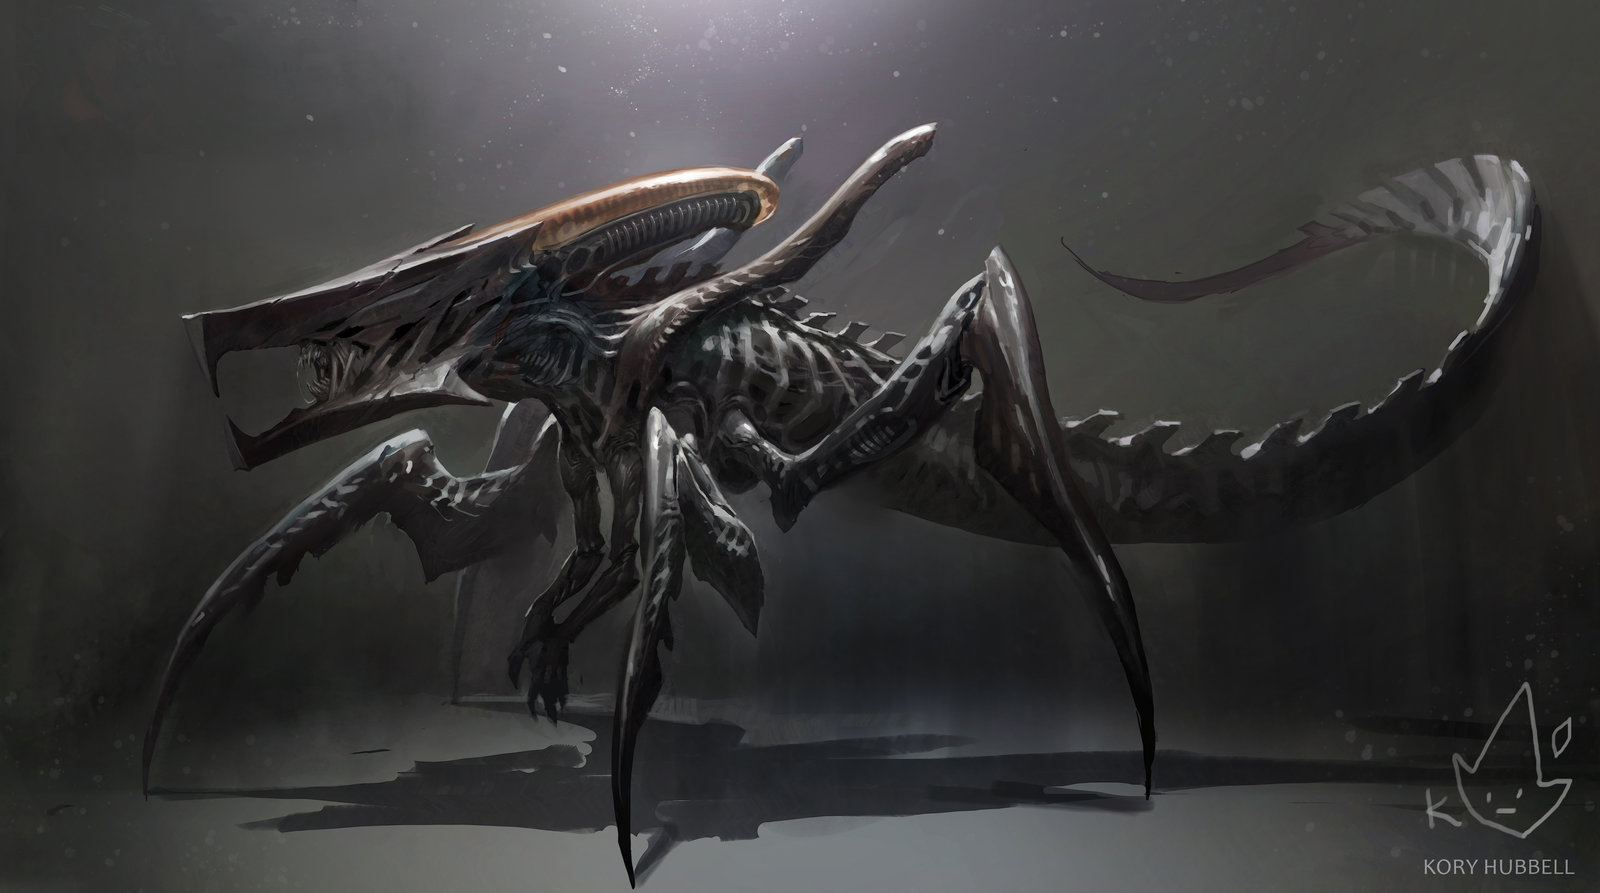 Xenomorph + Starship Troopers Warrior Bug